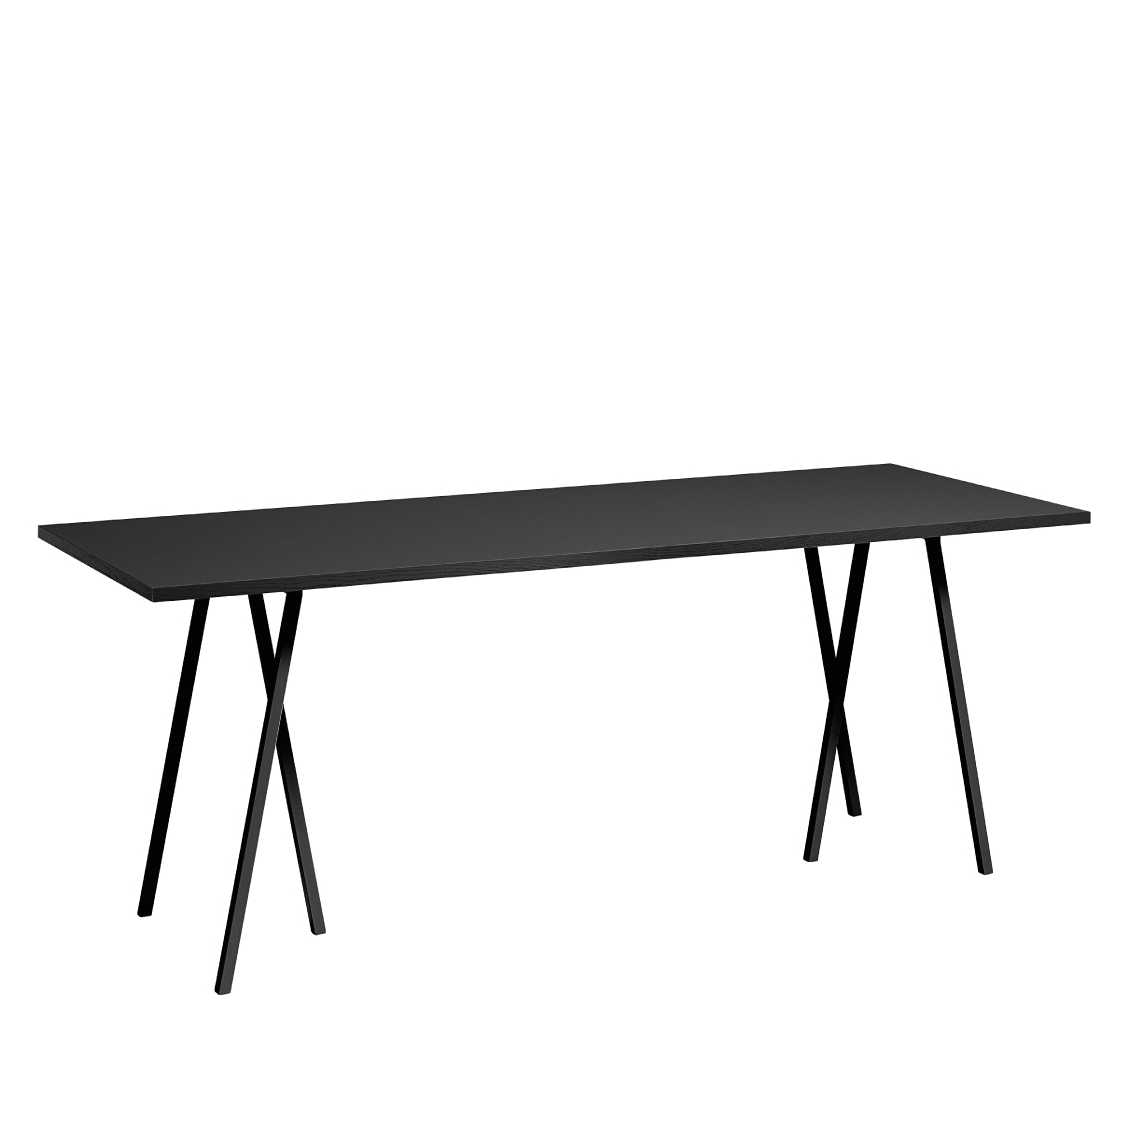 hay loop stand table 160cm x 77cm black white grey eettafel. Black Bedroom Furniture Sets. Home Design Ideas